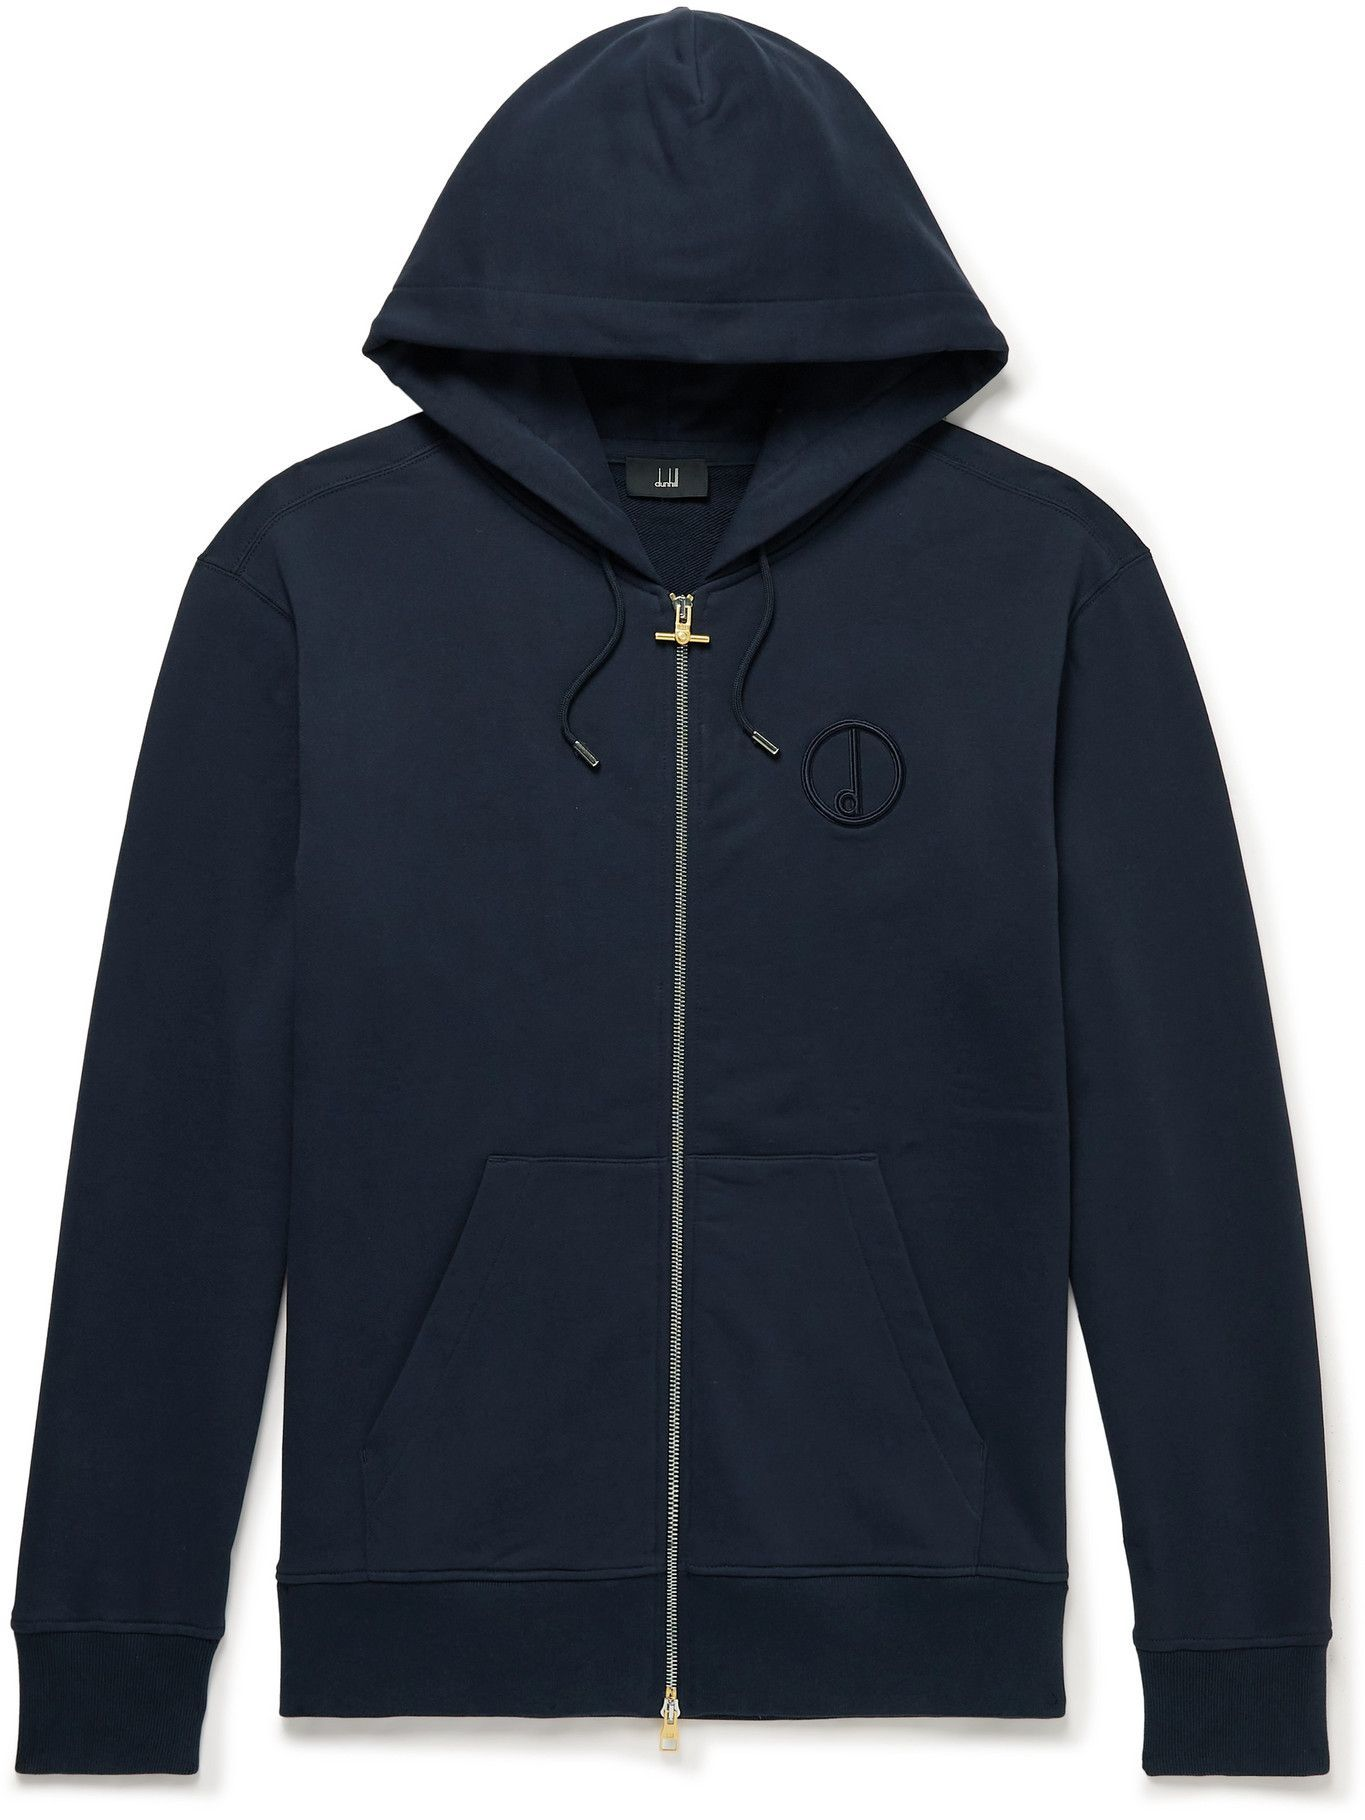 Dunhill - Logo-Embroidered Cotton-Jersey Zip-Up Hoodie - Blue